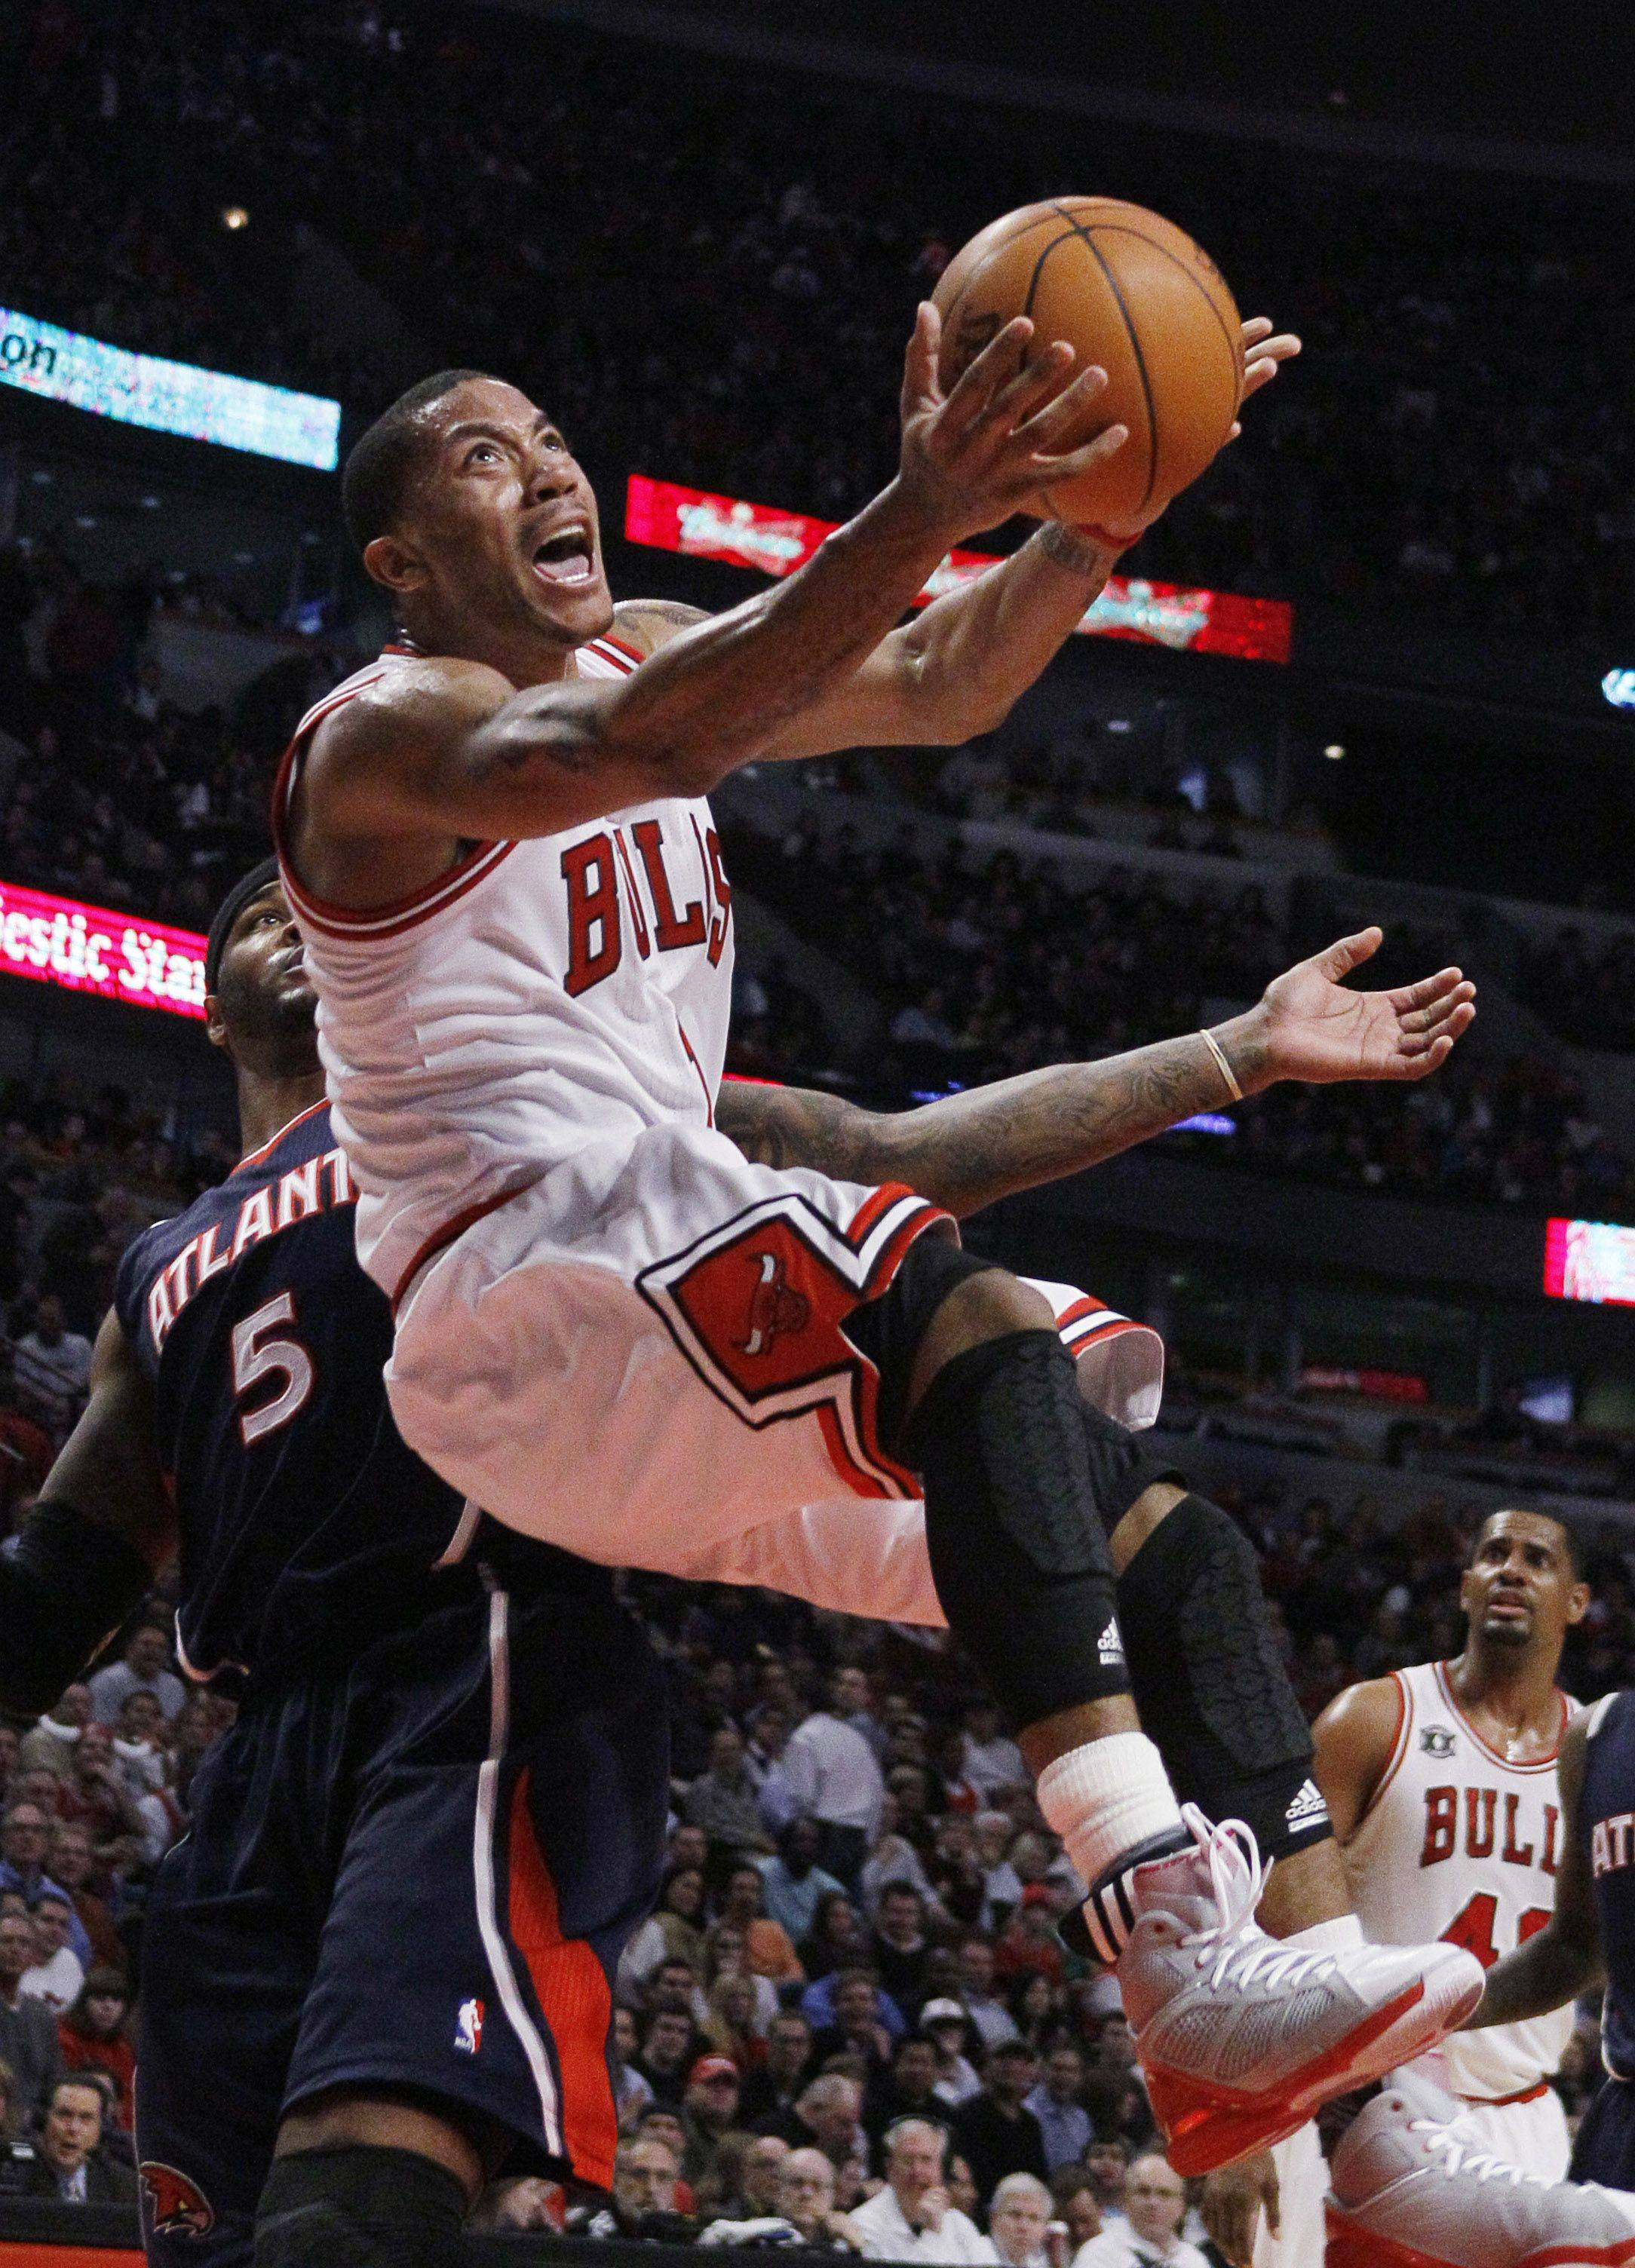 Bulls point guard Derrick Rose, right, scores over Atlanta Hawks power forward Josh Smith, during the second half Friday in Chicago. Rose led all scorers with 34 points in their 94-76 win.